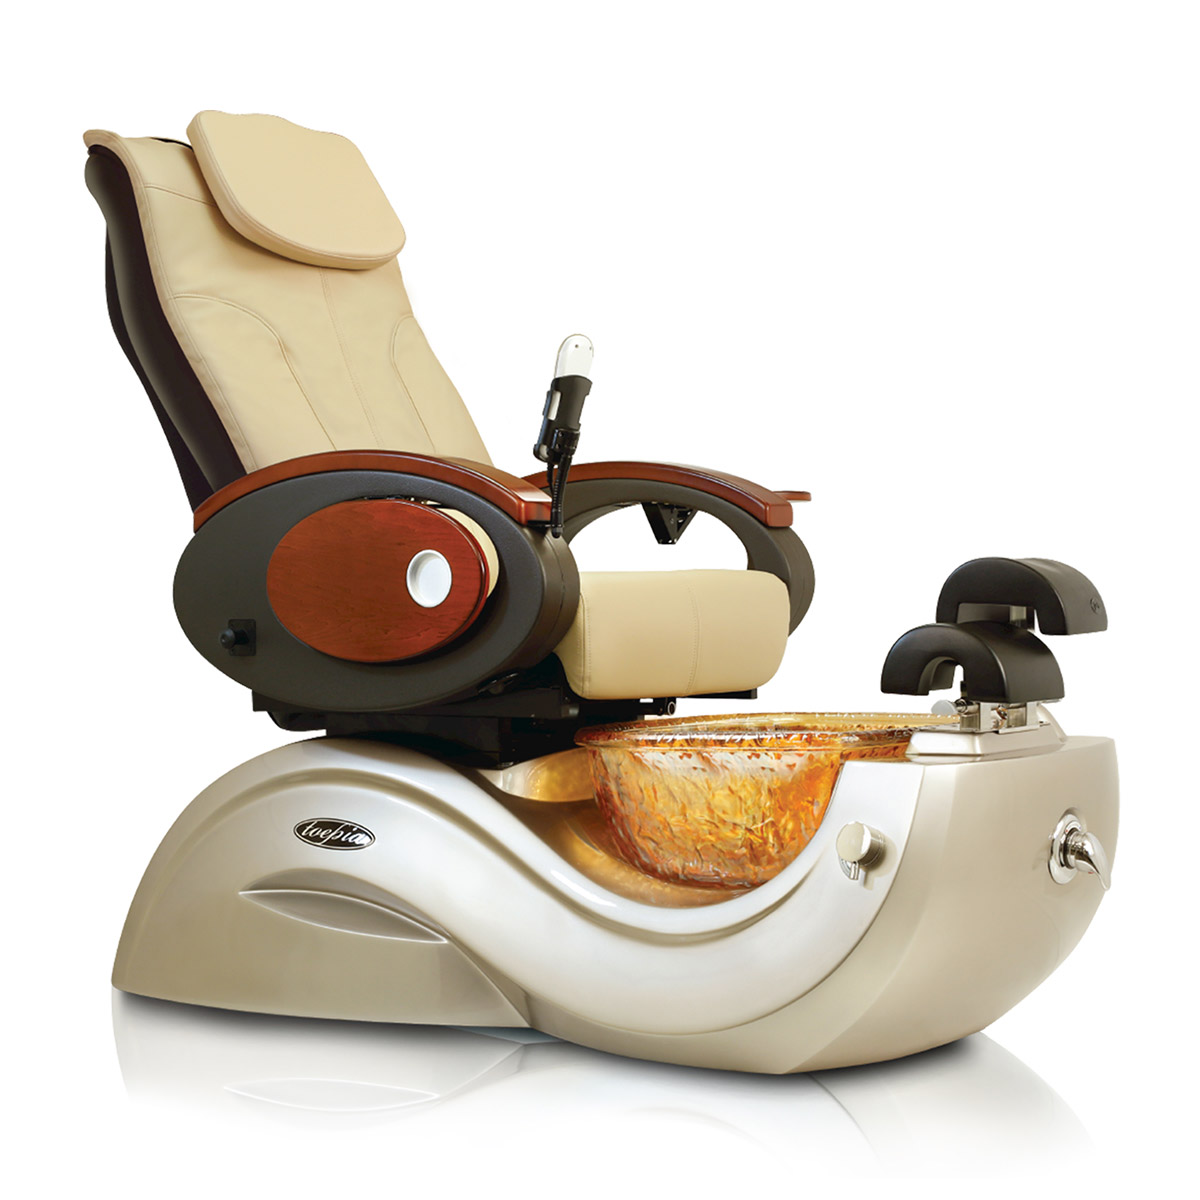 Toepia GX Pipeless Pedicure Spa Chair w/Vented Option  main product image